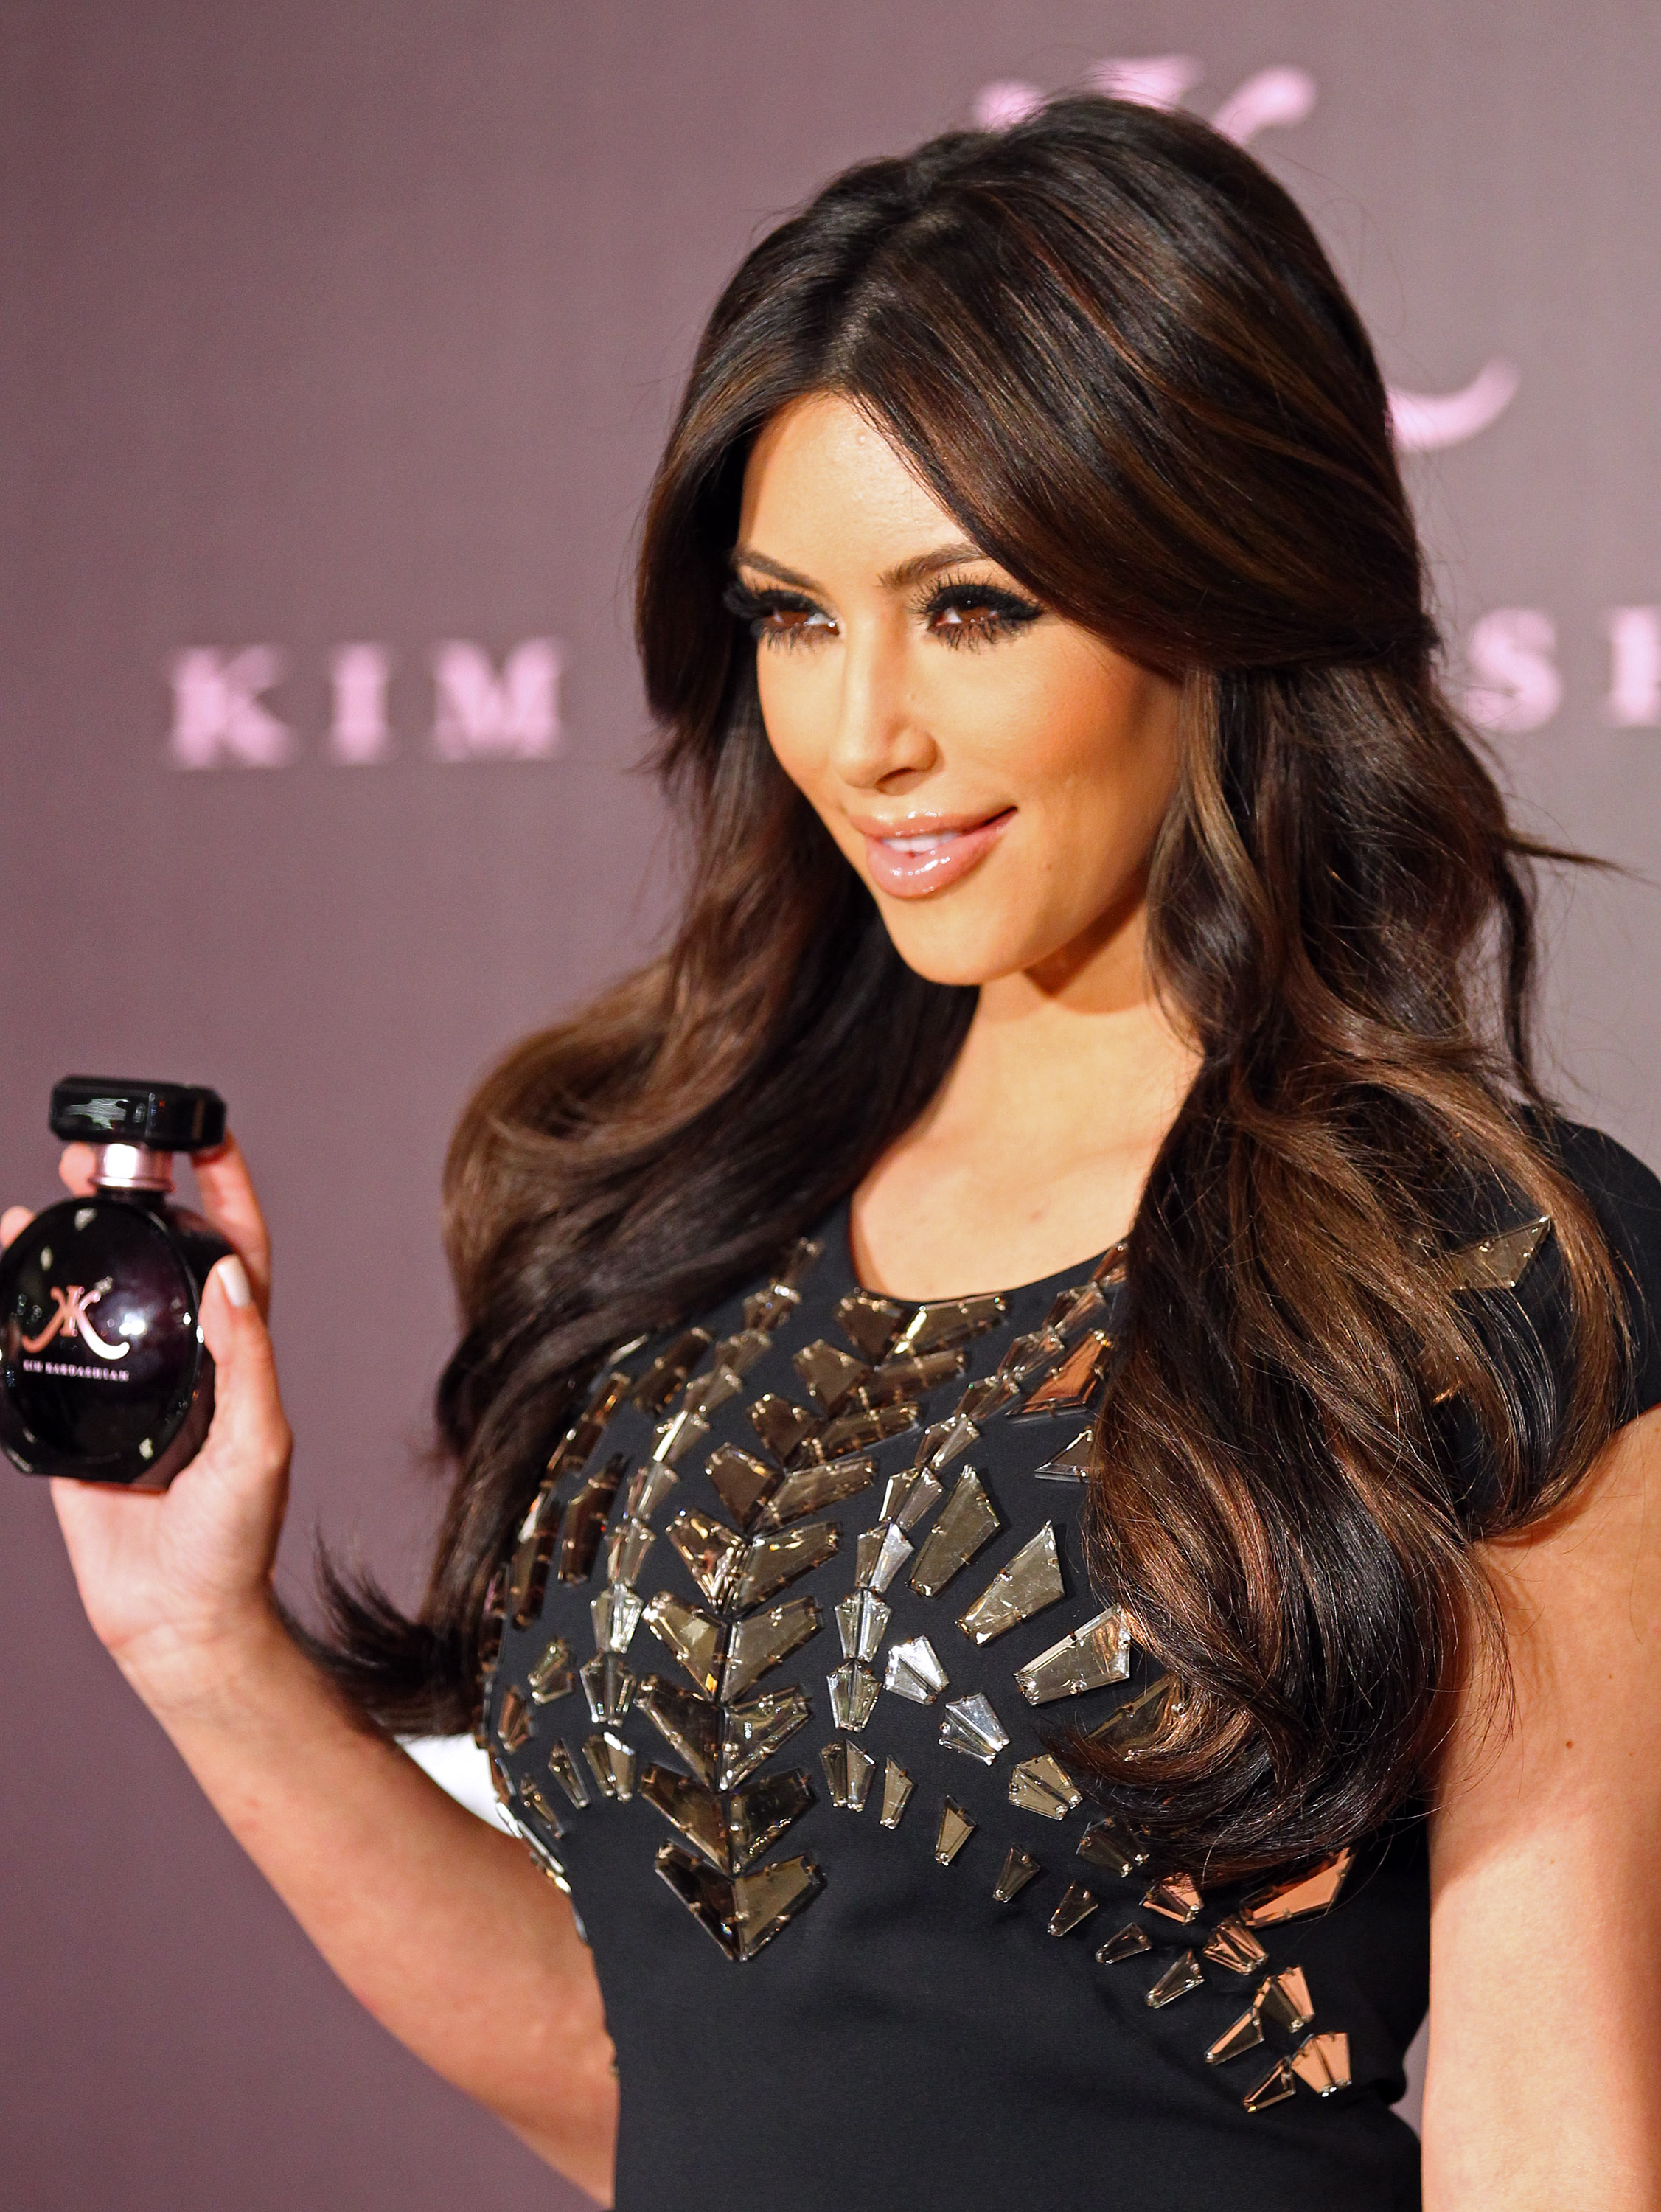 Kim Kardashian launches her new perfume at Macy's in Glendale, California. Pictured: Kim Kardashian Ref: SPL251220 230211 Picture by: Splash News Splash News and Pictures Los Angeles:310-821-2666 New York: 212-619-2666 London: 870-934-2666 photodesk@splashnews.com